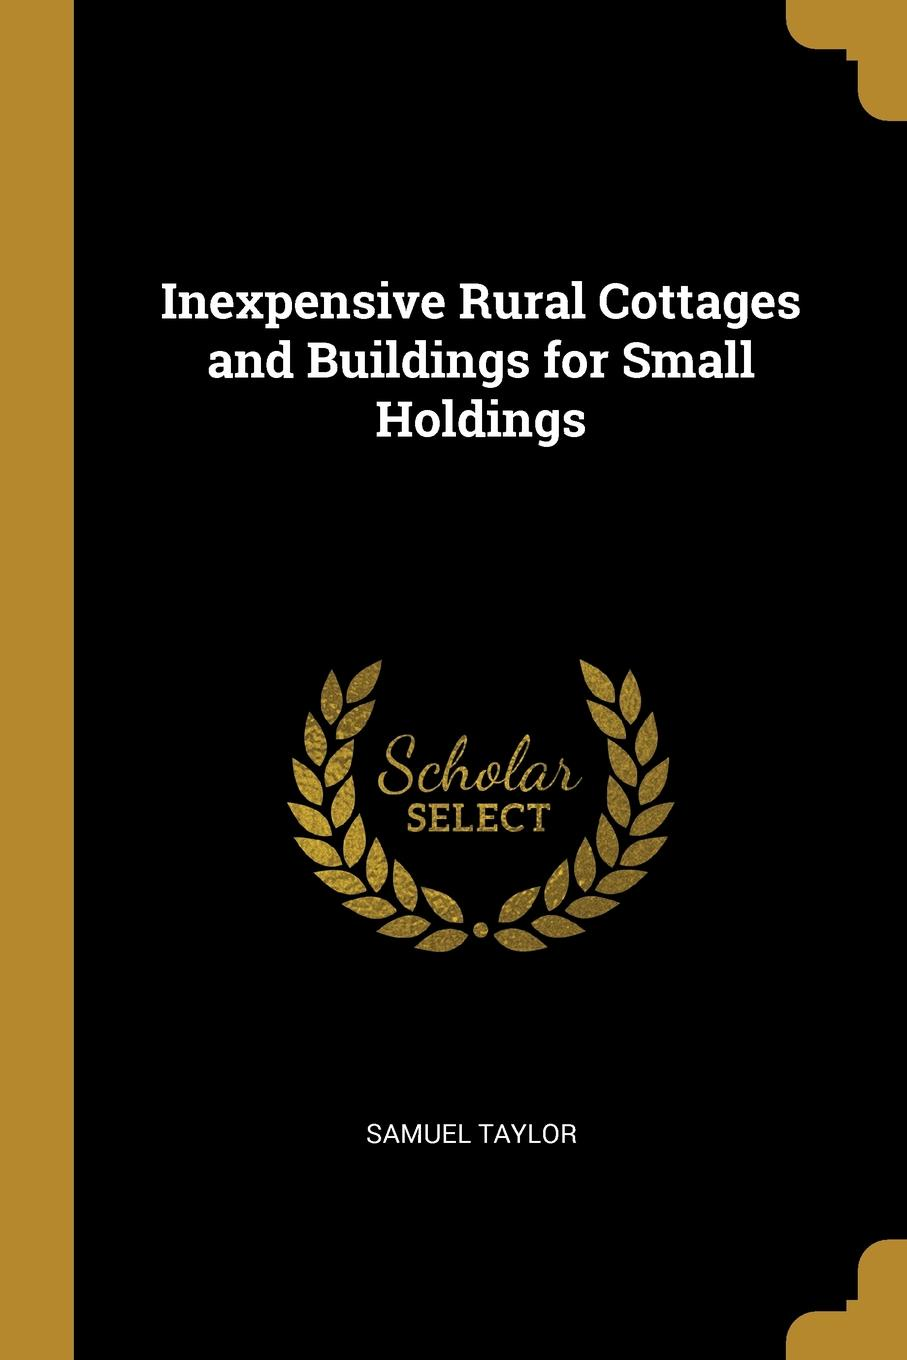 Samuel Taylor. Inexpensive Rural Cottages and Buildings for Small Holdings